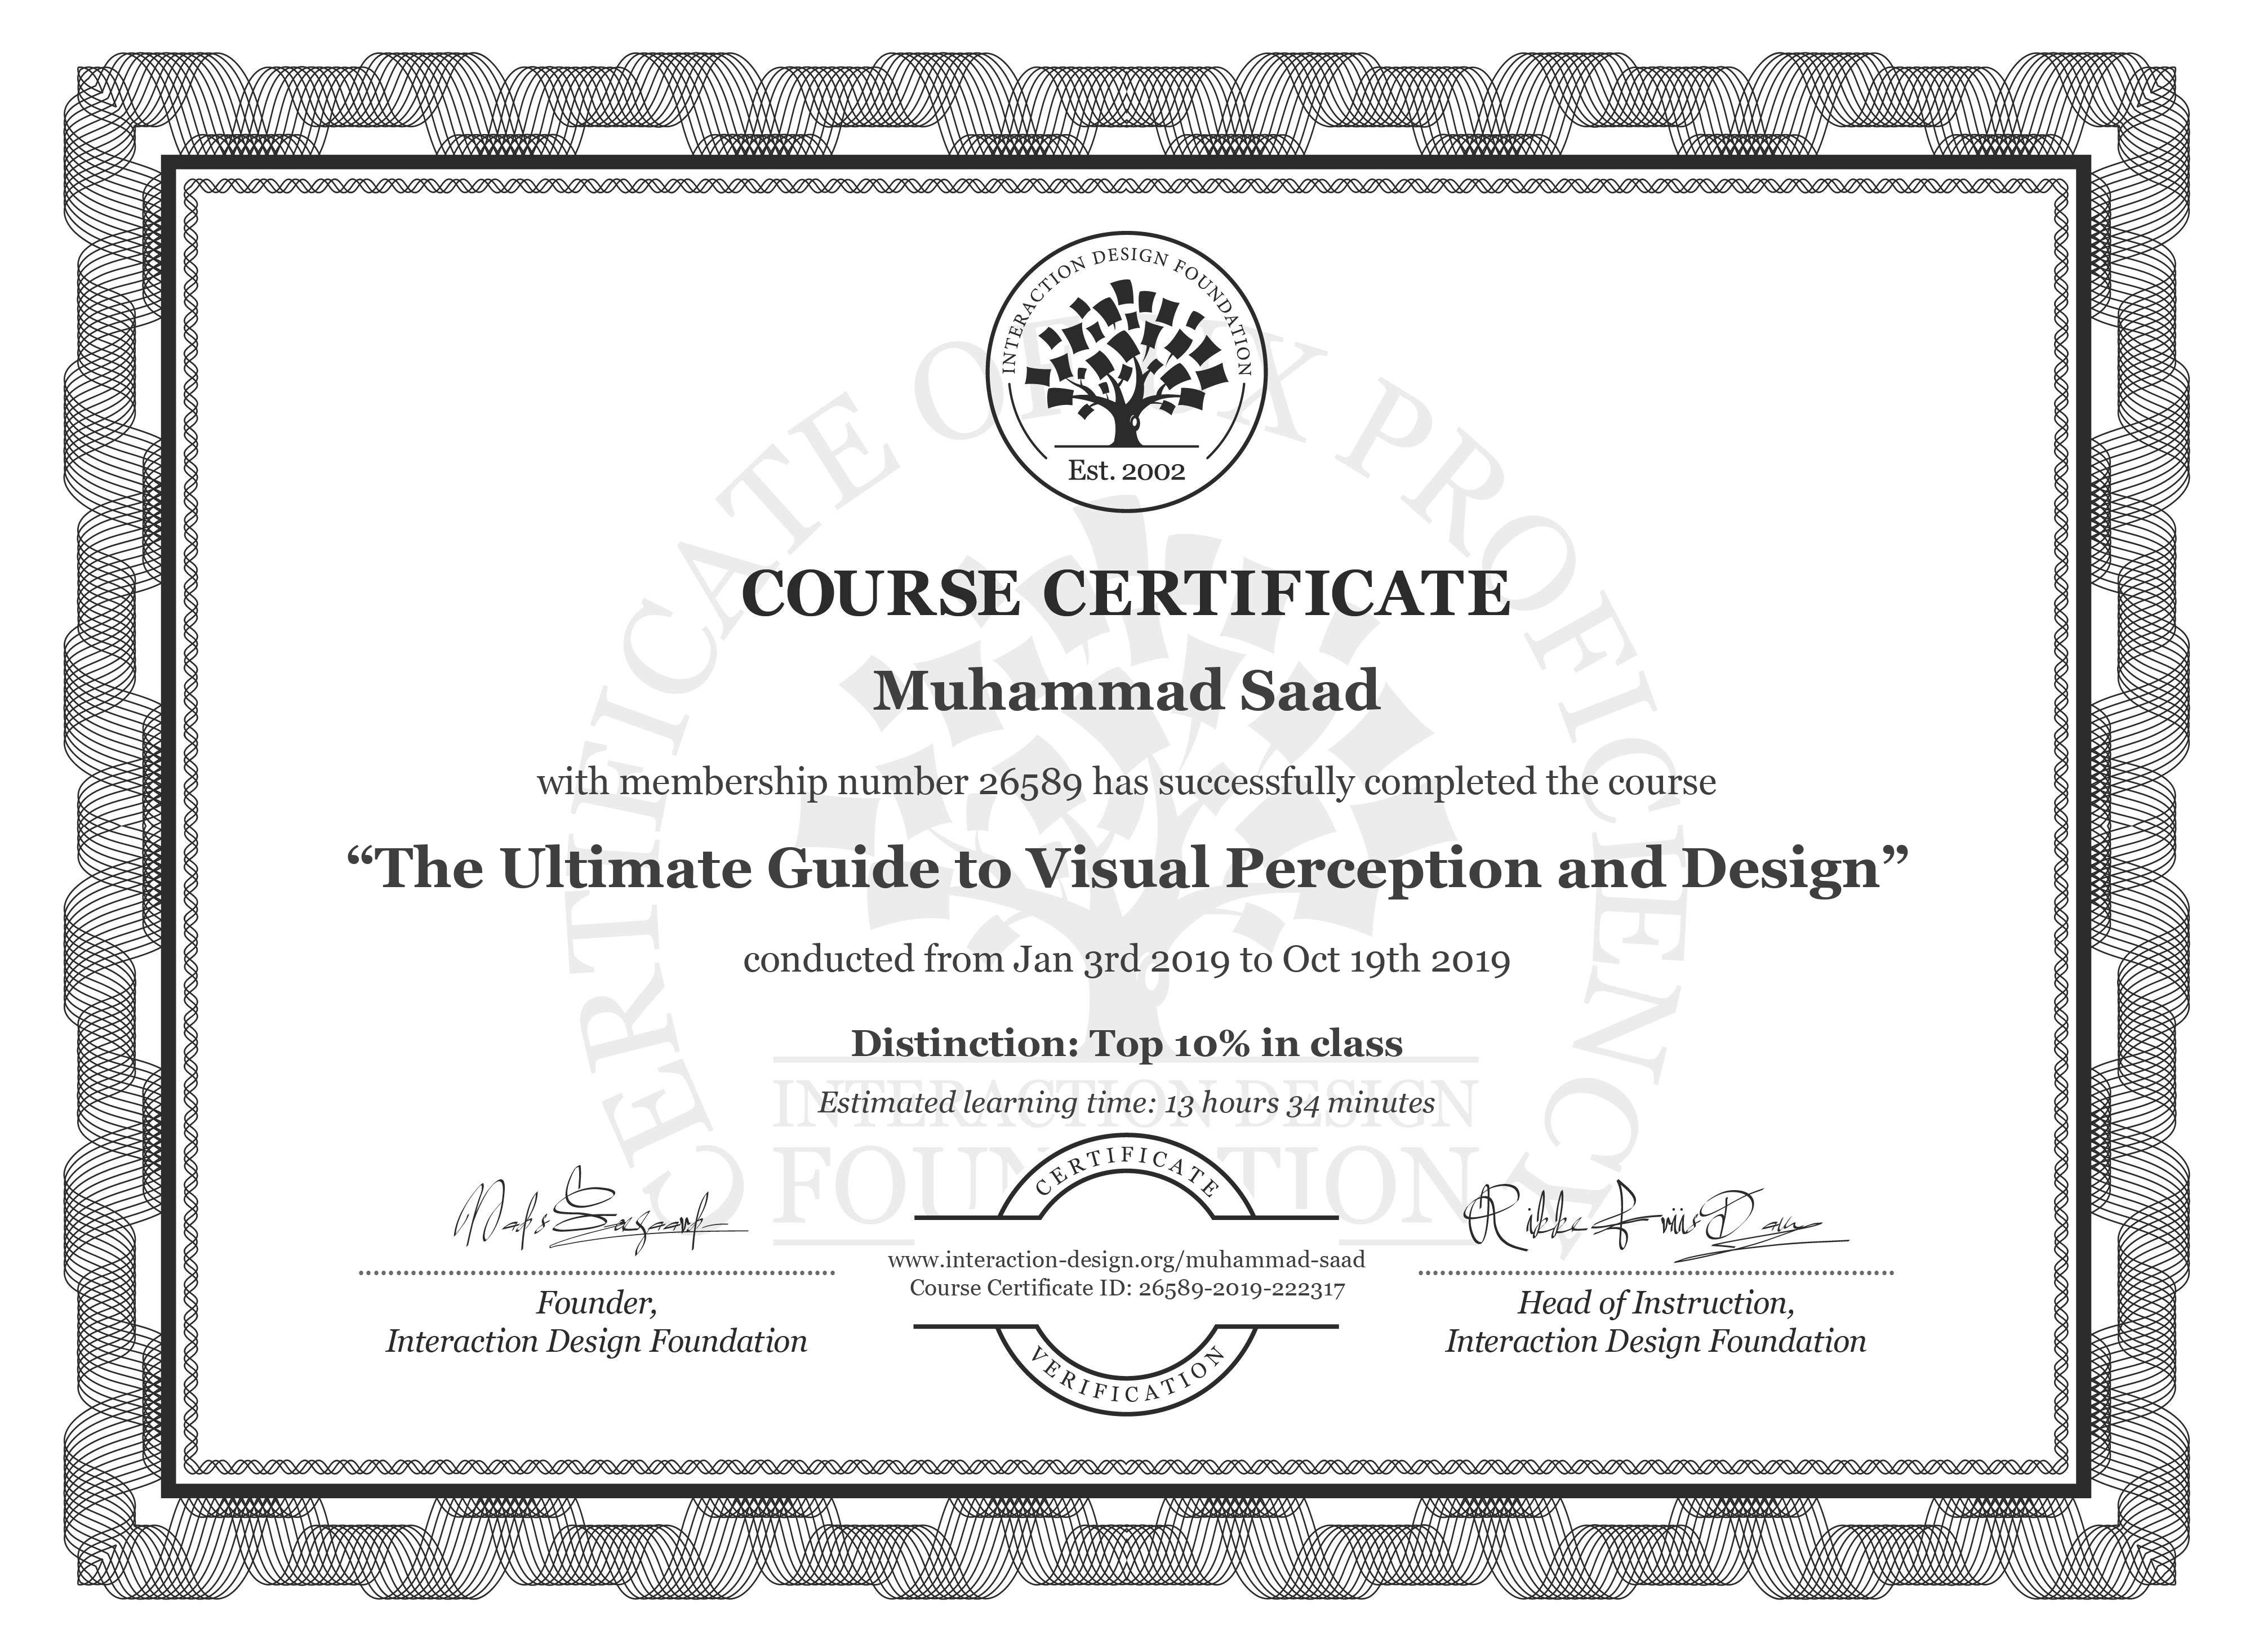 Muhammad Saad: Course Certificate - The Ultimate Guide to Visual Perception and Design